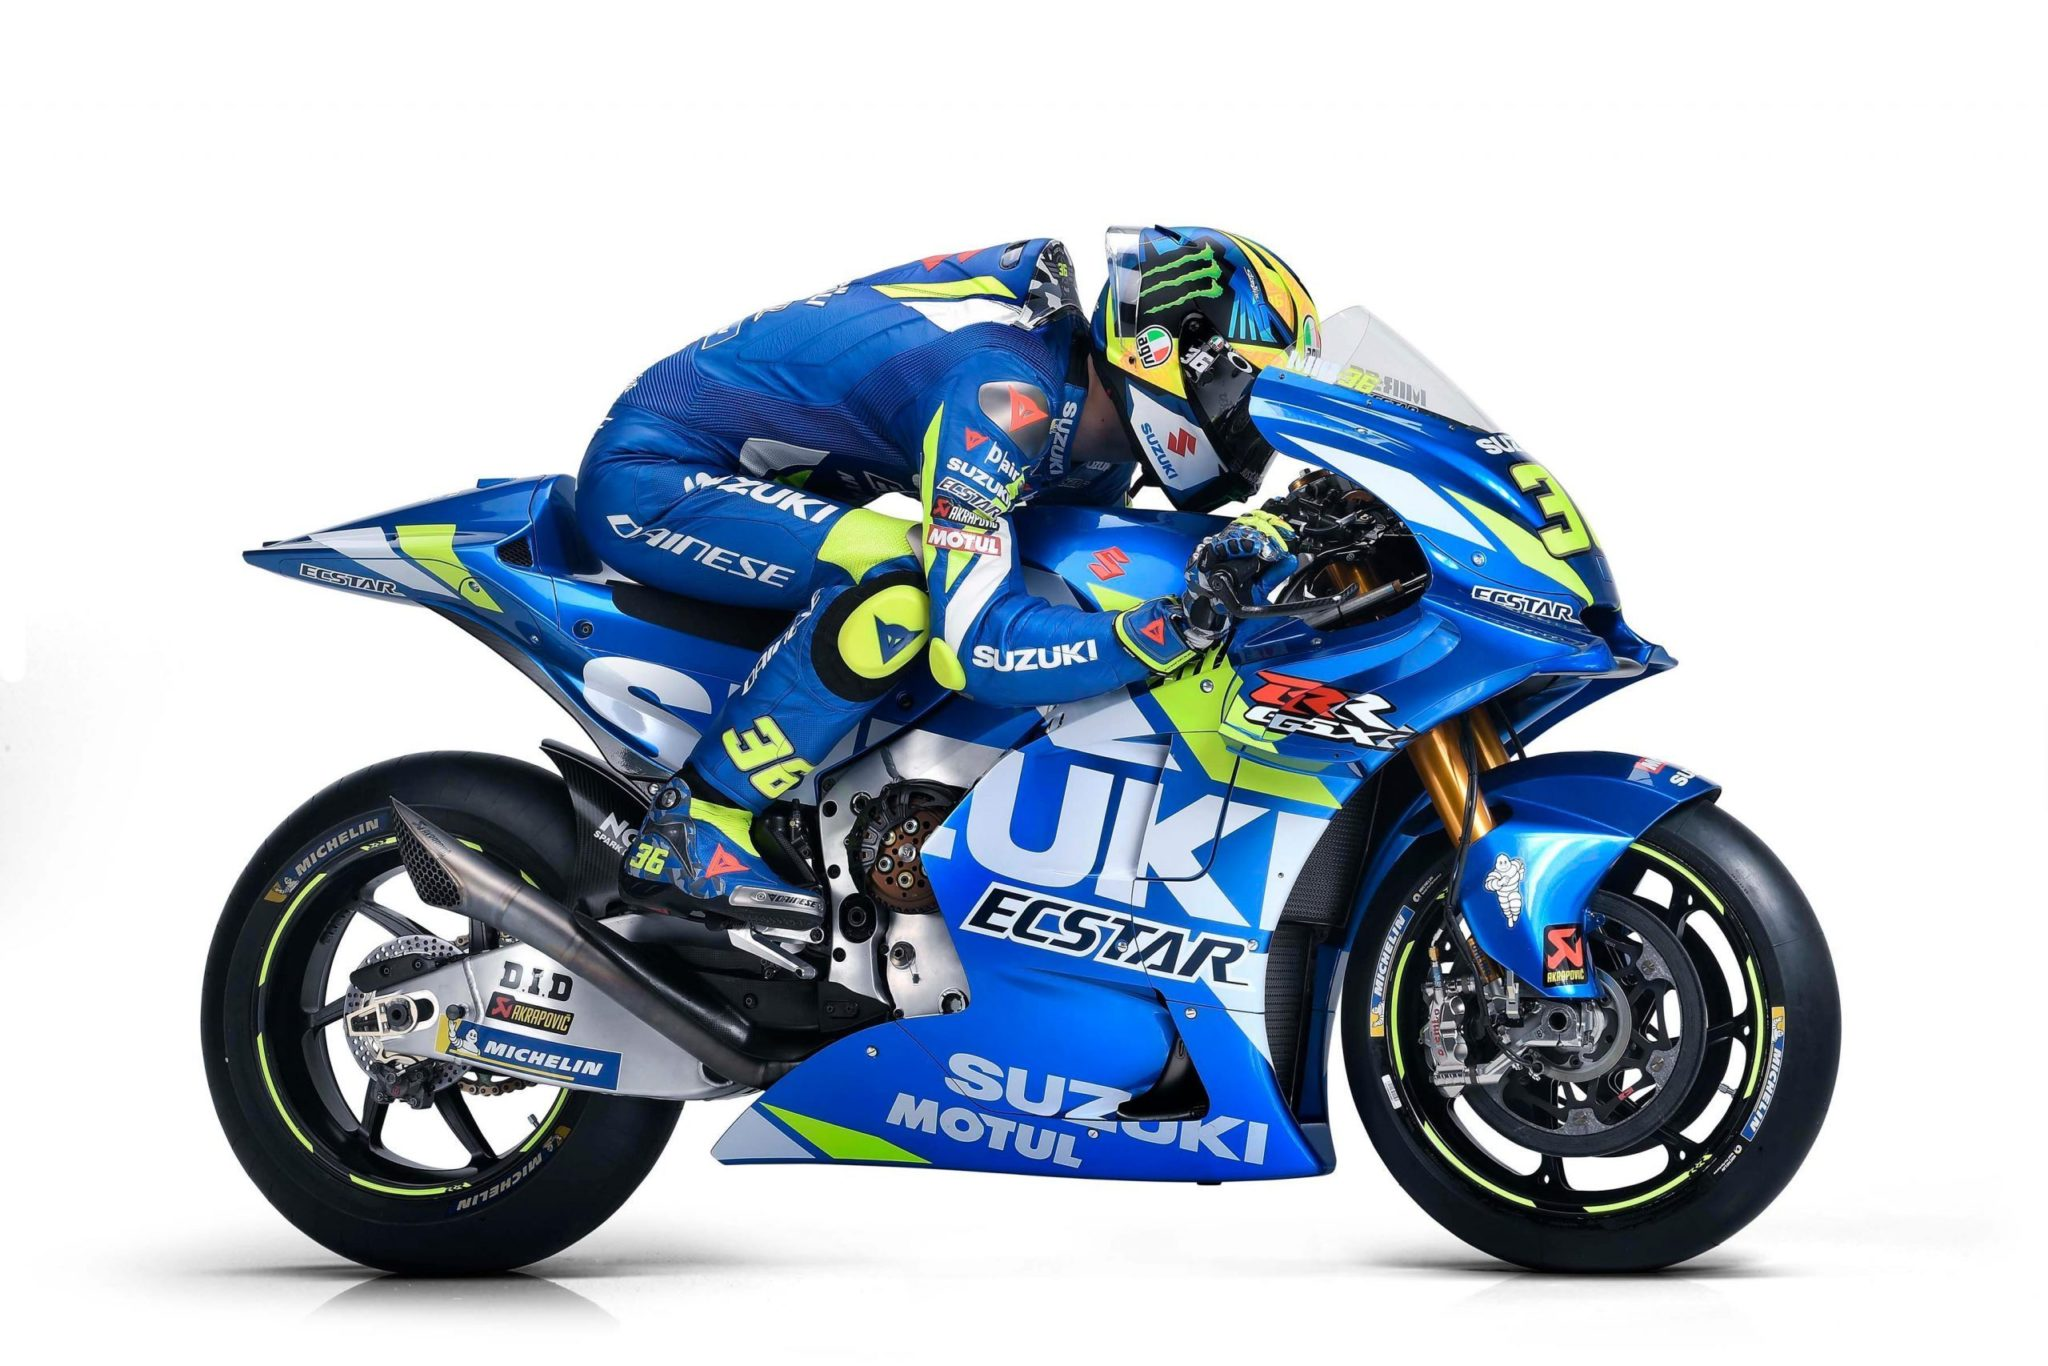 MotoGP – Suzuki won't have a new GSX-RR in 2019